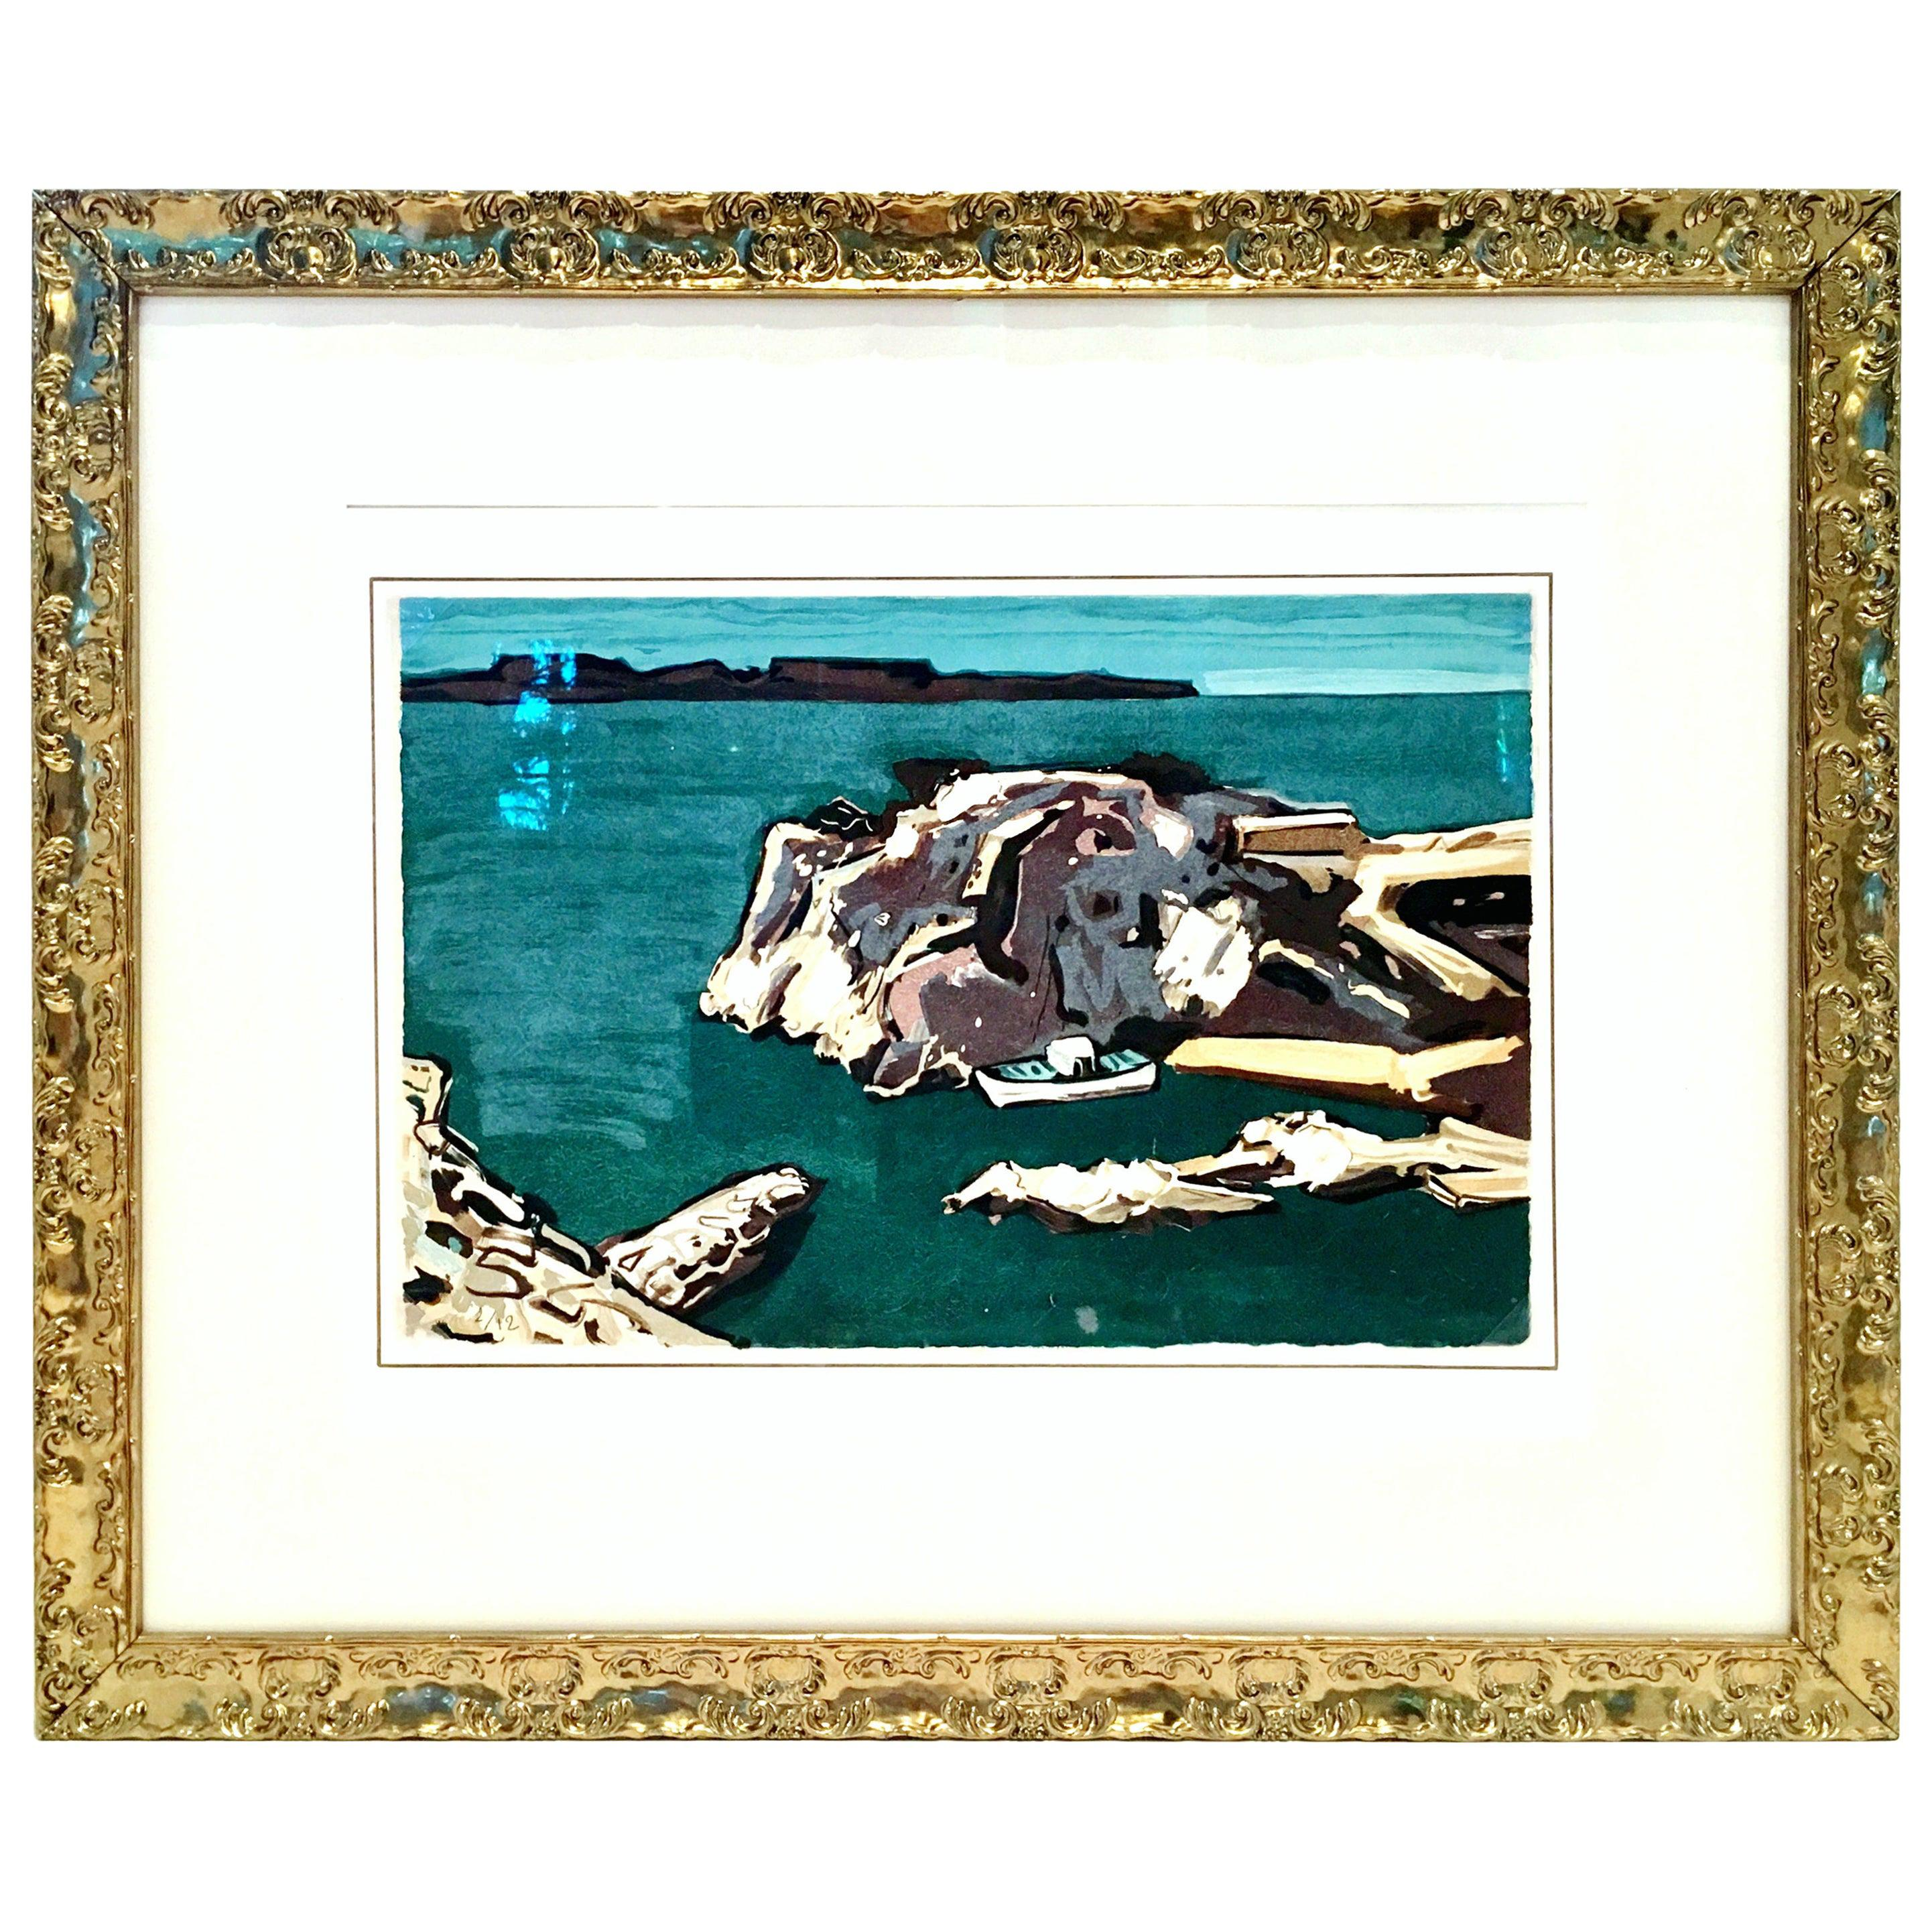 """1970s Original Limited Edition Lithograph """"Niolon"""" by Jean-Claude Quilici"""